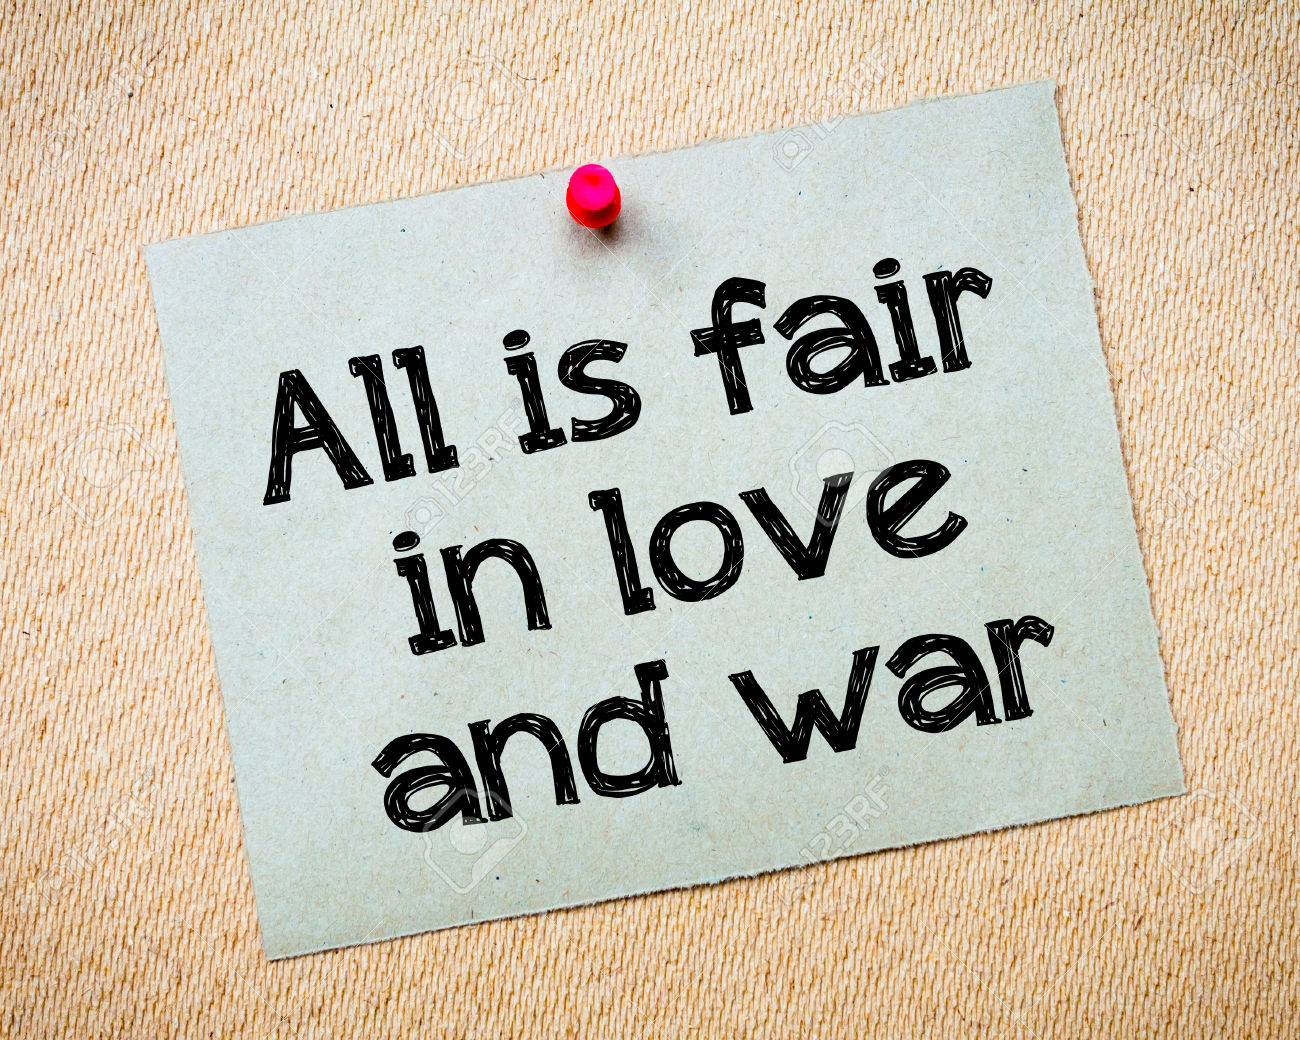 every thing is fair in love and war essay The earliest known origin of the sentiment all is fair in love in war is found in poet john lyly's novel euphues: the anatomy of wit, published in 1579 the novel recounts the romantic adventures of a wealthy and attractive young man, and includes the quote the rules of fair play do not apply.